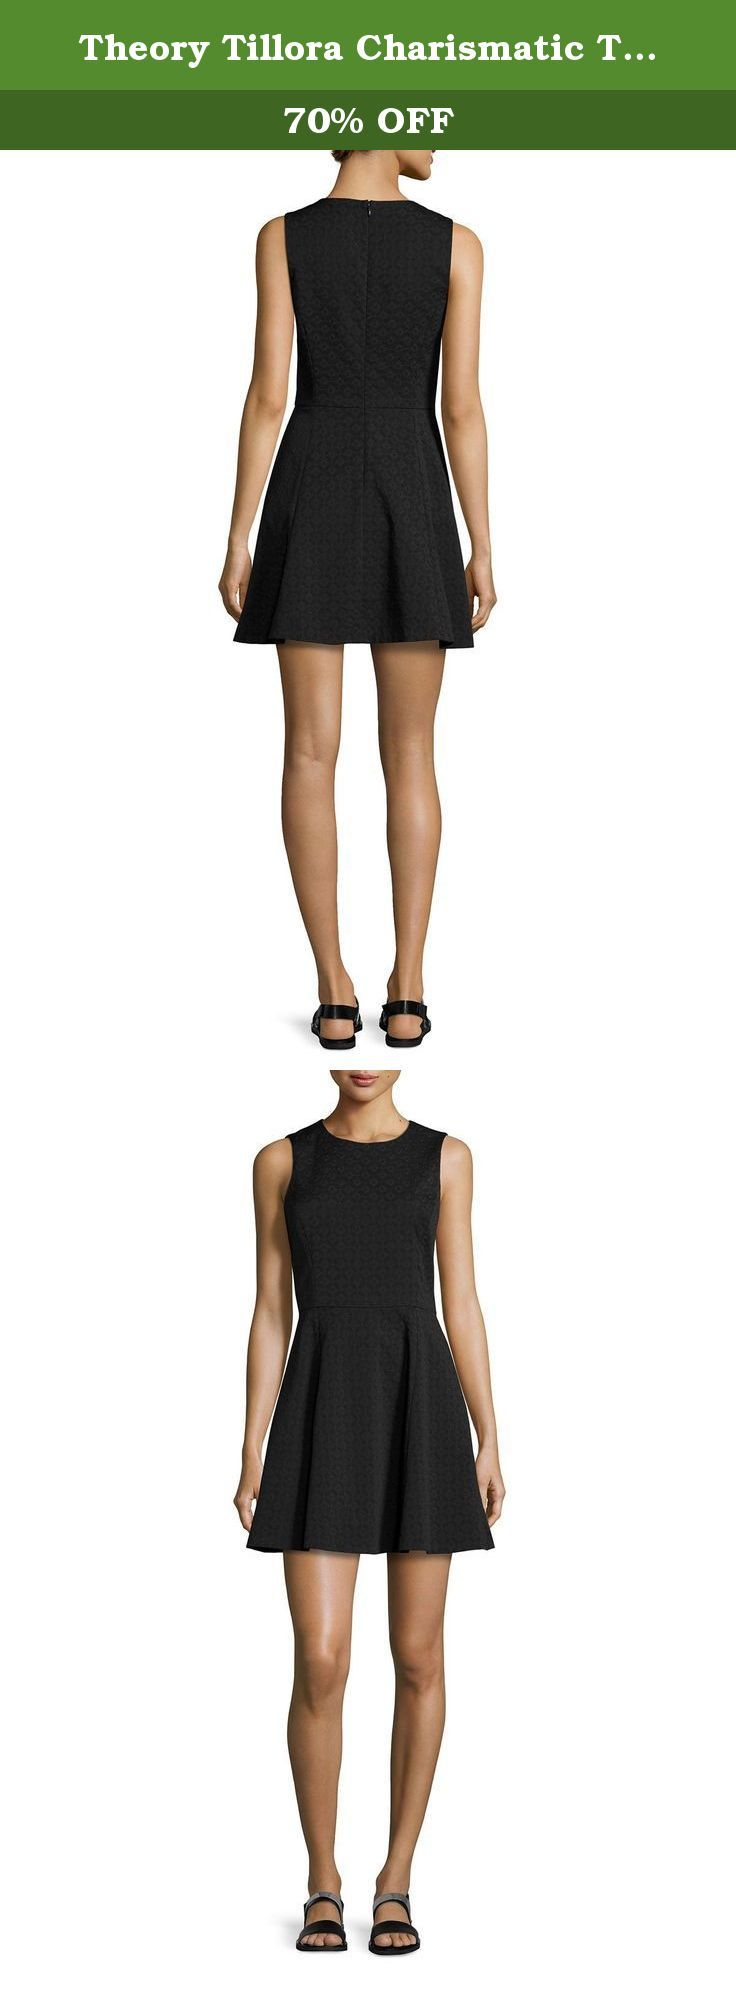 """Theory Tillora Charismatic Textured Fit-and-Flare Dress, Black, Size 4. Theory """"Tillora"""" dress in textured Charismatic fabric. Round neckline. Sleeveless. Seam at natural waist. Pleated, full skirt. Center back zip. Nylon/wool/spandex. Made in USA of Italian material. UPC 821117670890."""